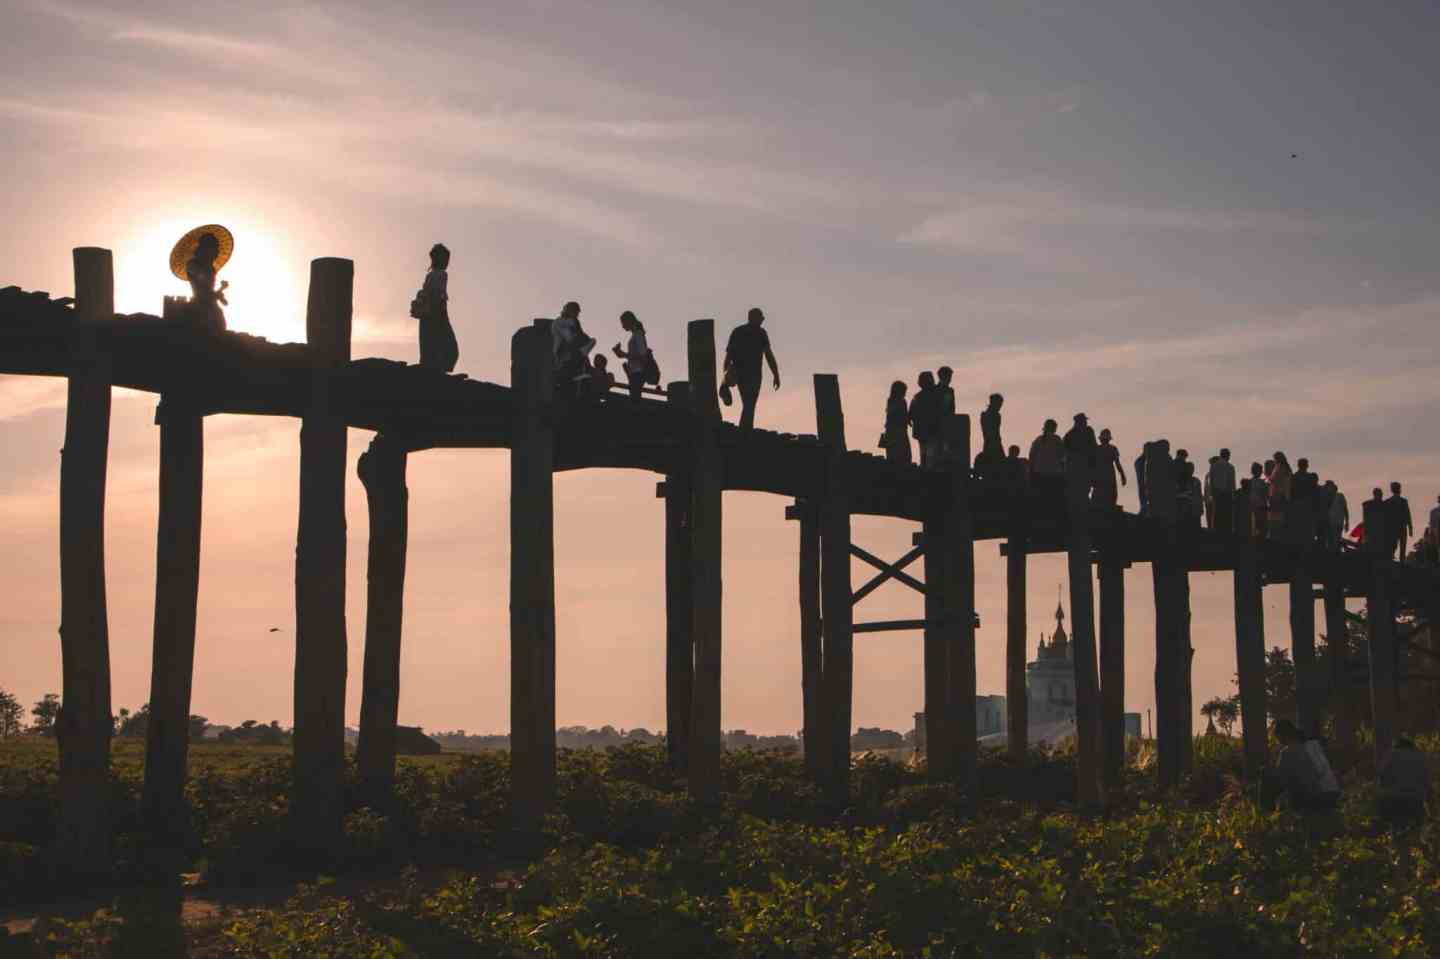 U Bein Bridge - Mandalay